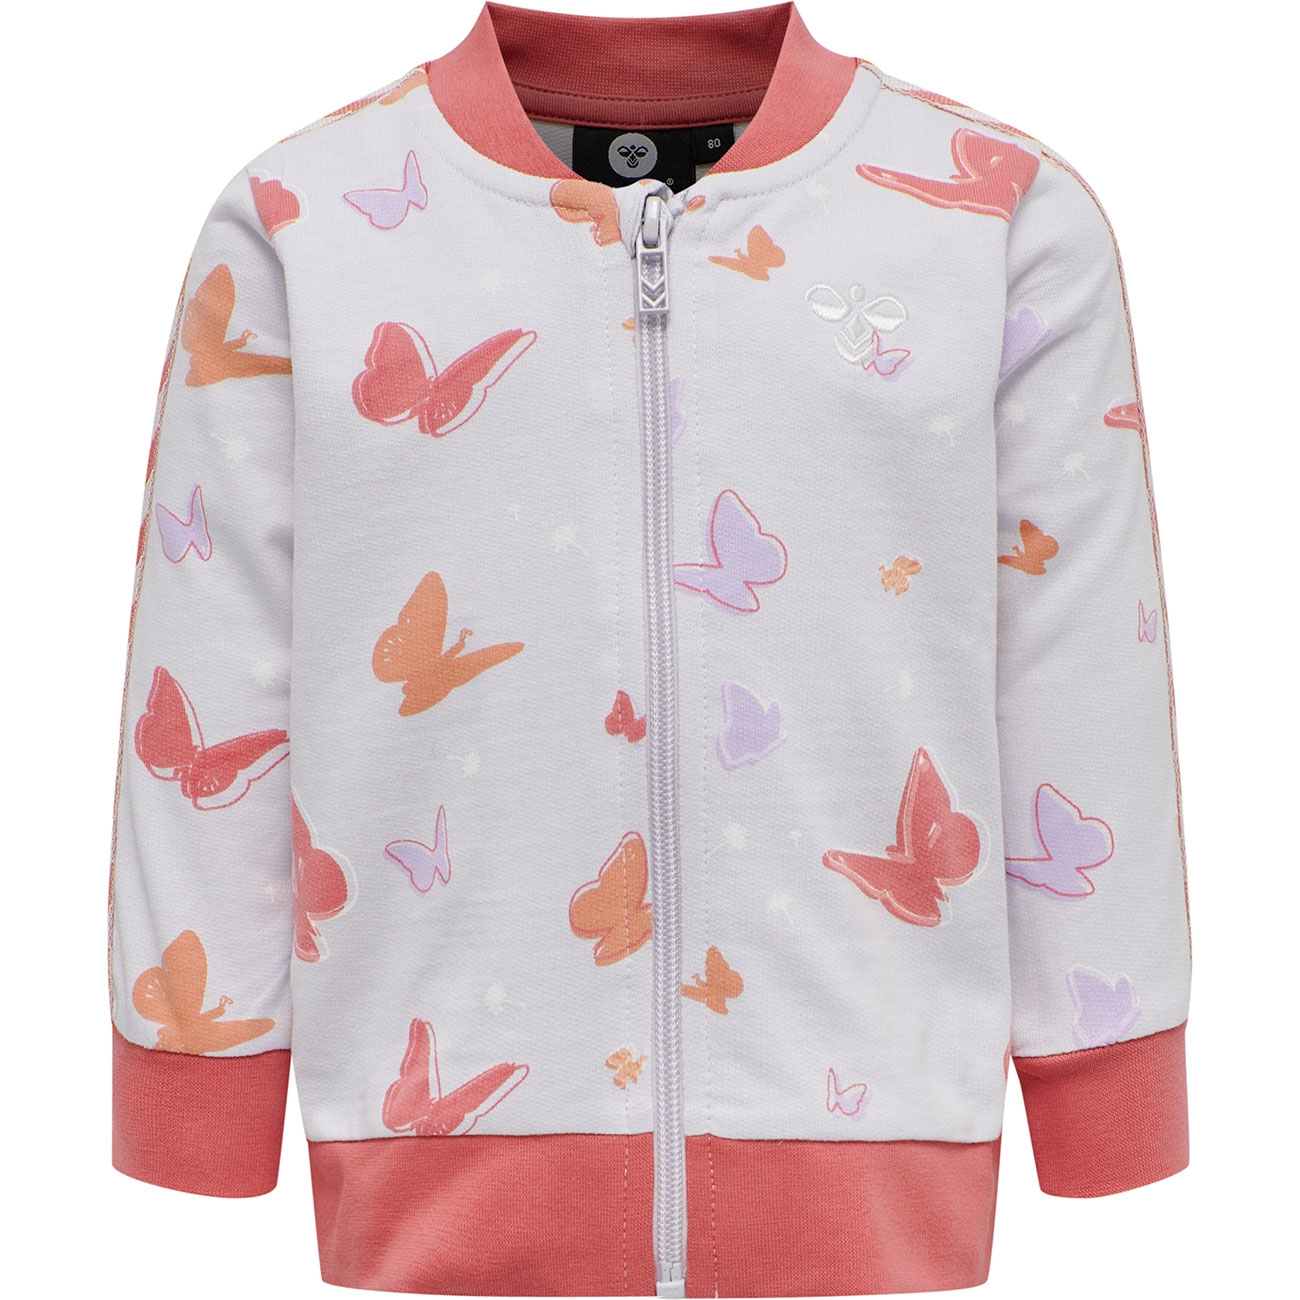 hummel-jacket-jakke-cardigan-red-roed-orange-purple-lilla-sommerfugle-butterfly